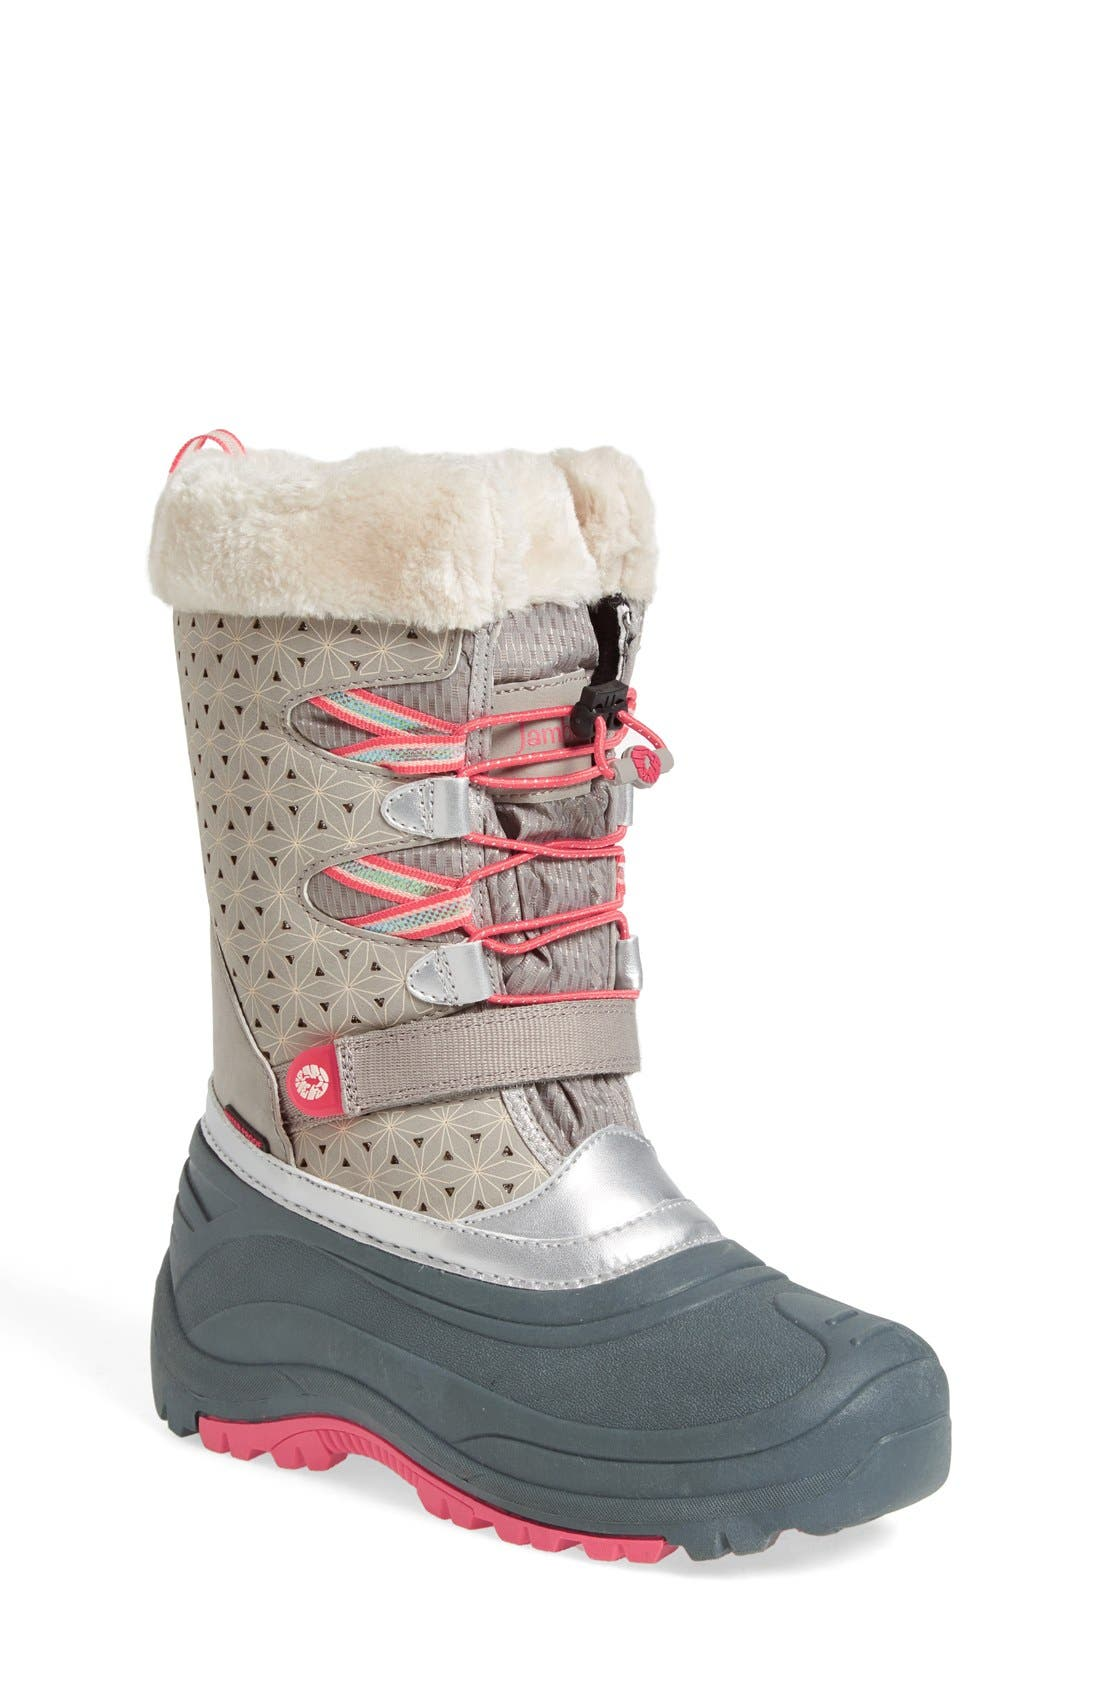 'Venom' Waterproof Insulated Snow Boot,                             Main thumbnail 1, color,